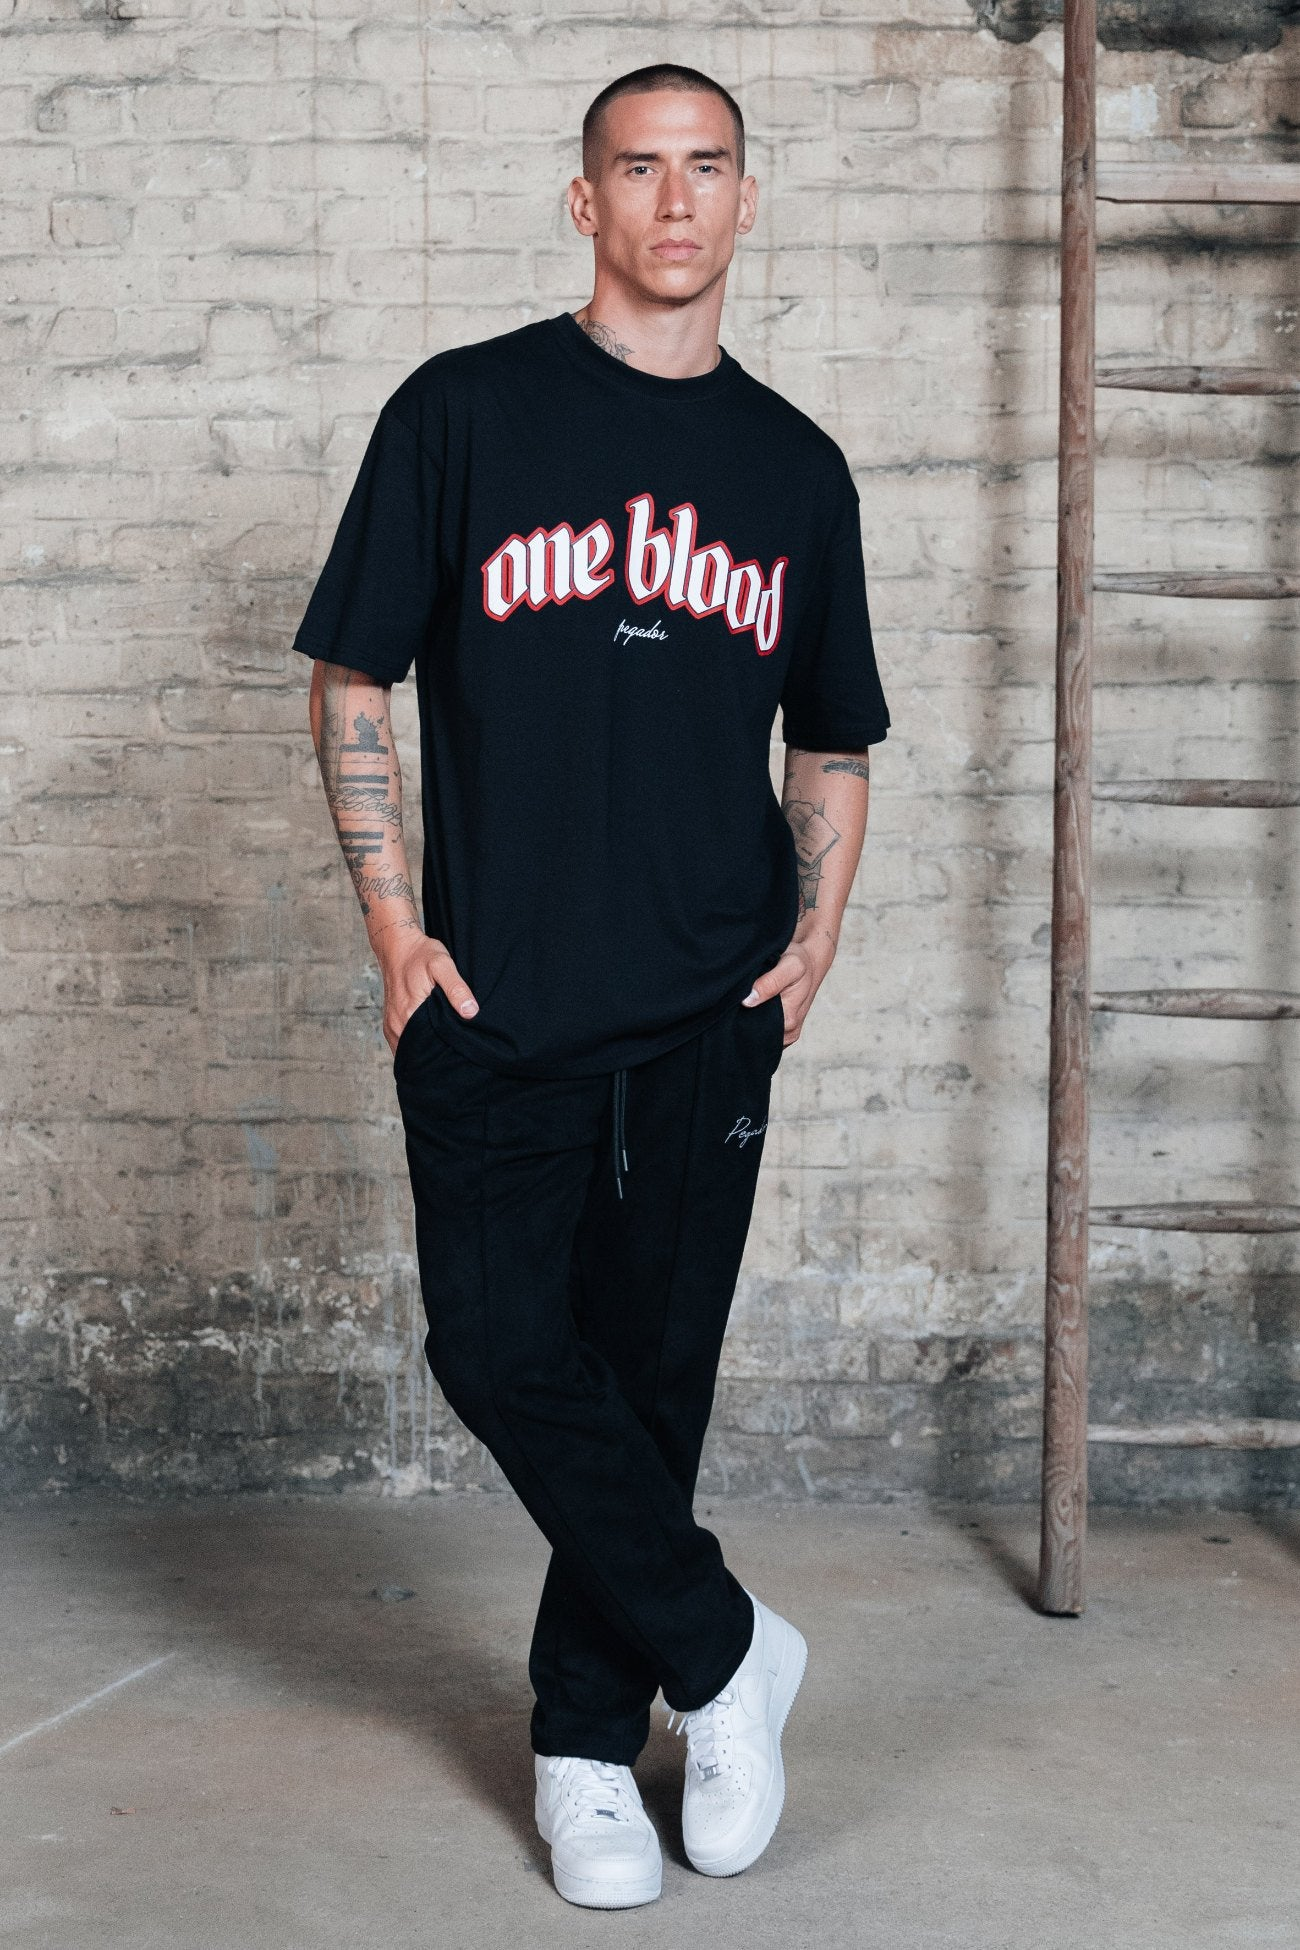 Oneblood Oversized Tee Black T-SHIRT One blood